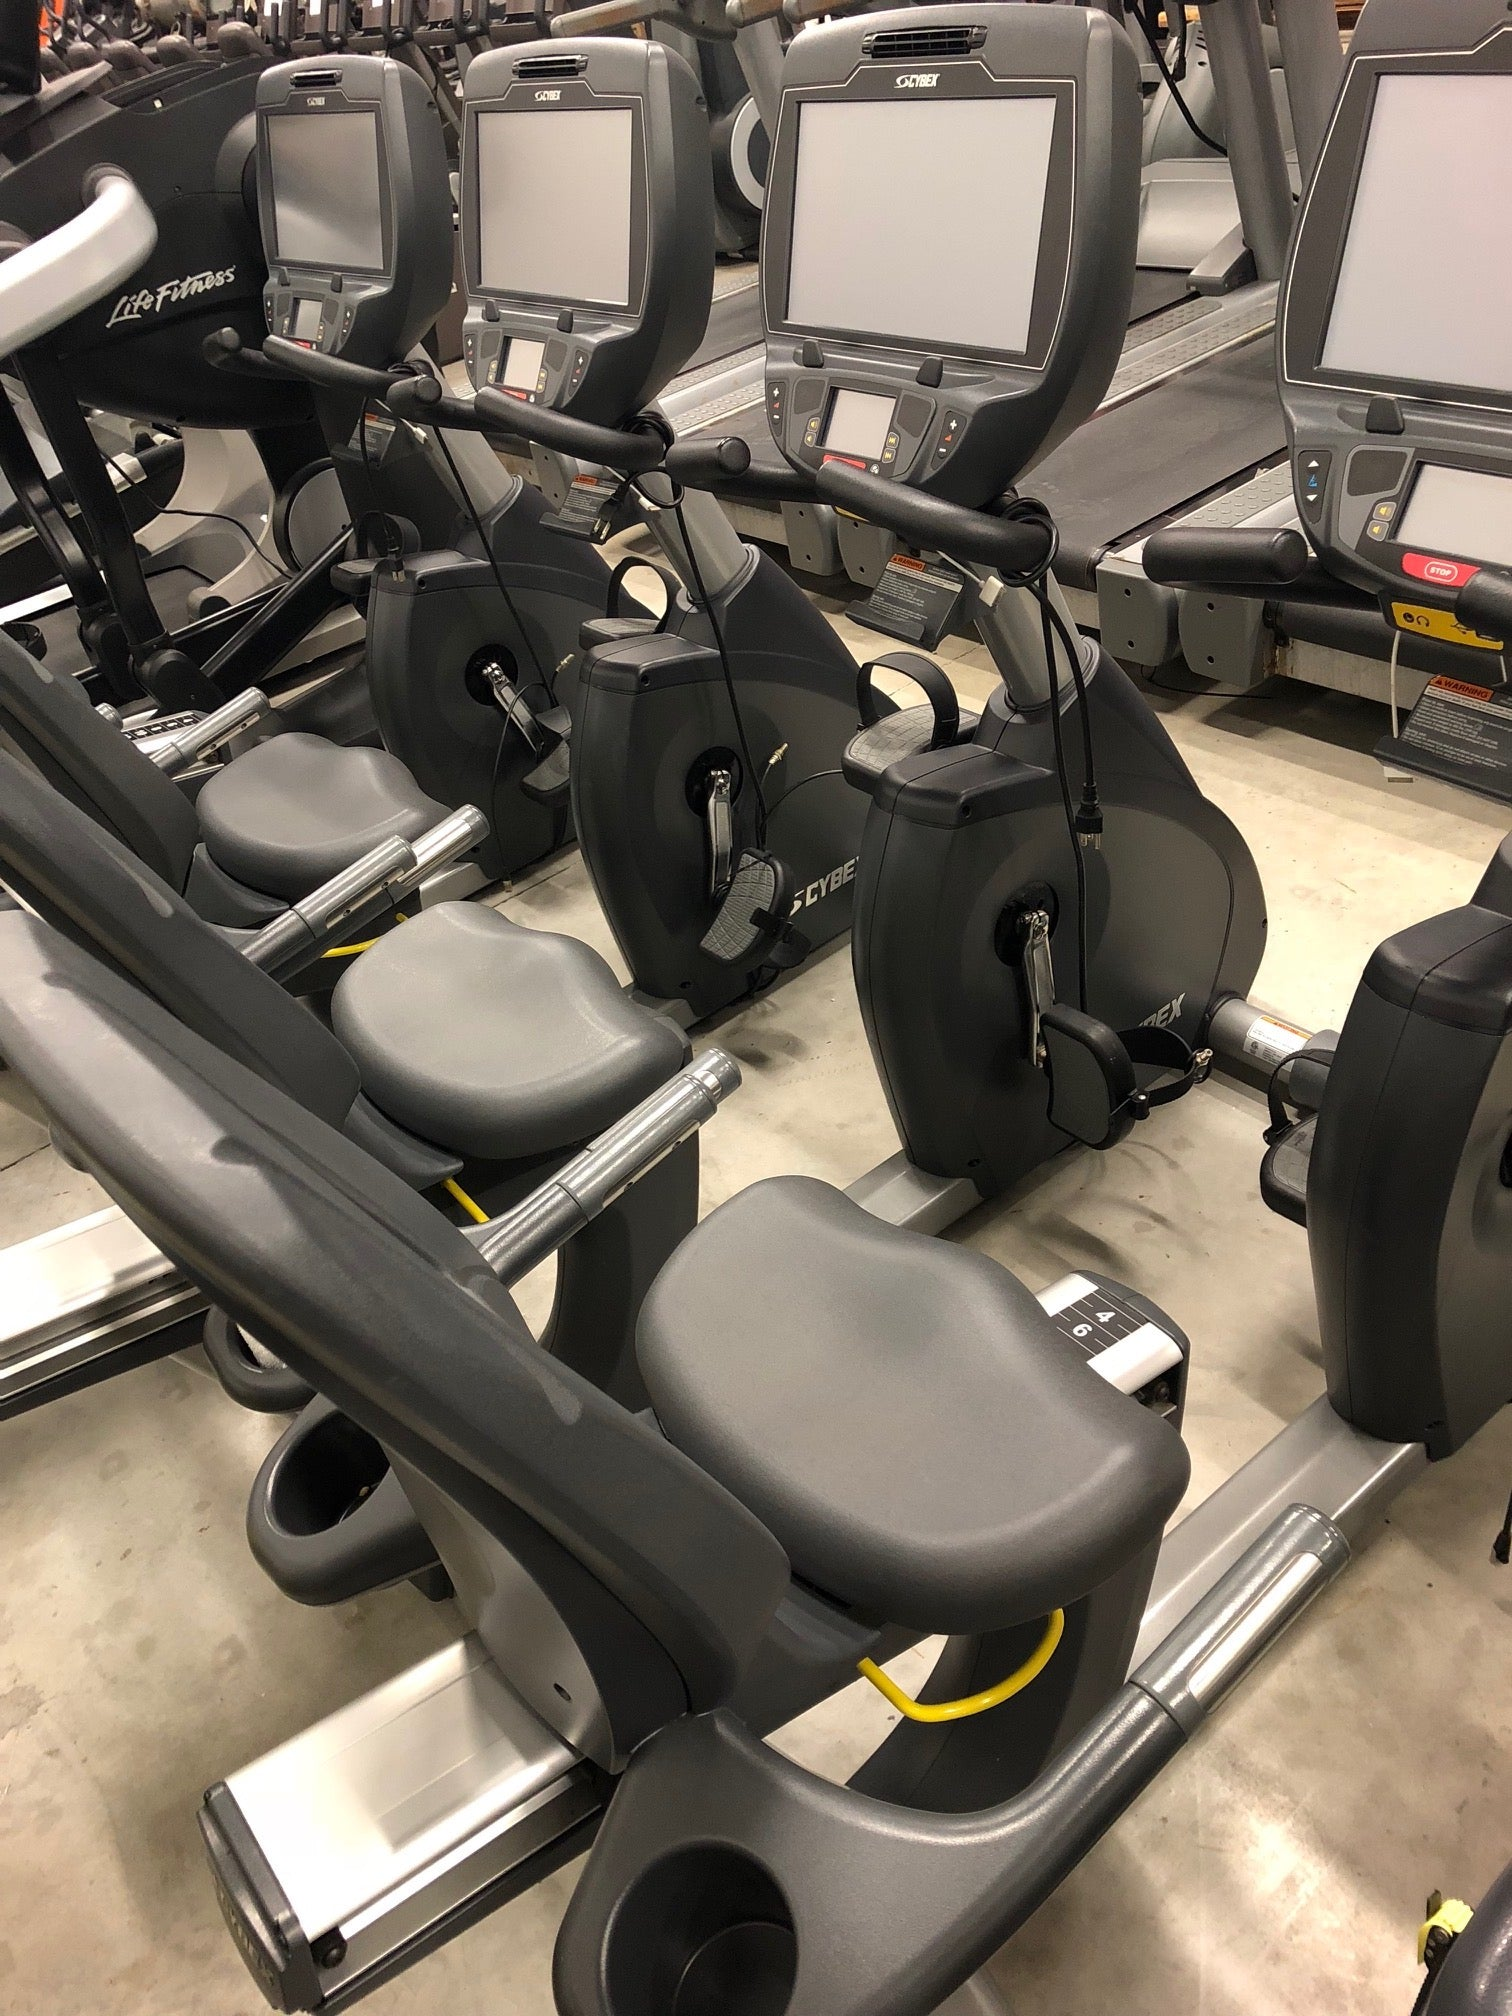 Cybex 770R Recumbent Cycle